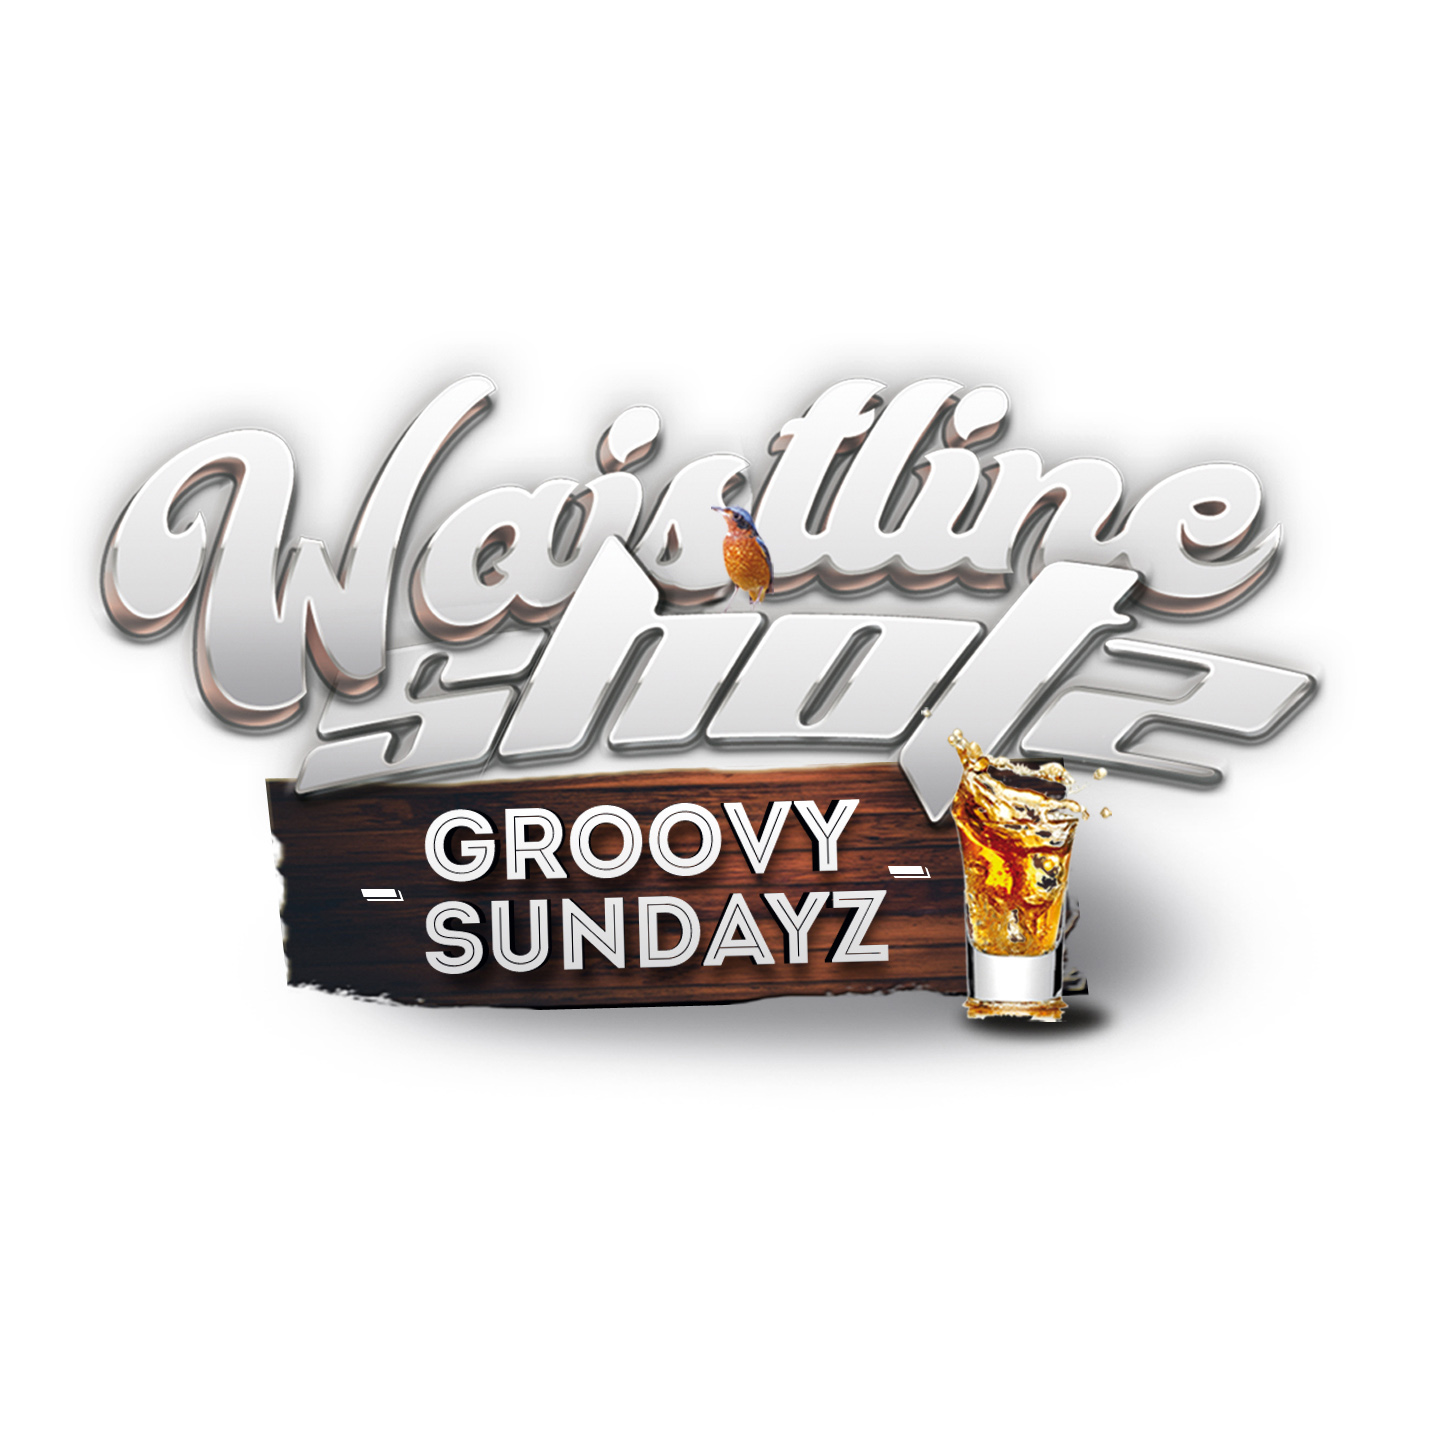 Click for a preview of the first edition of Waistline Shotz